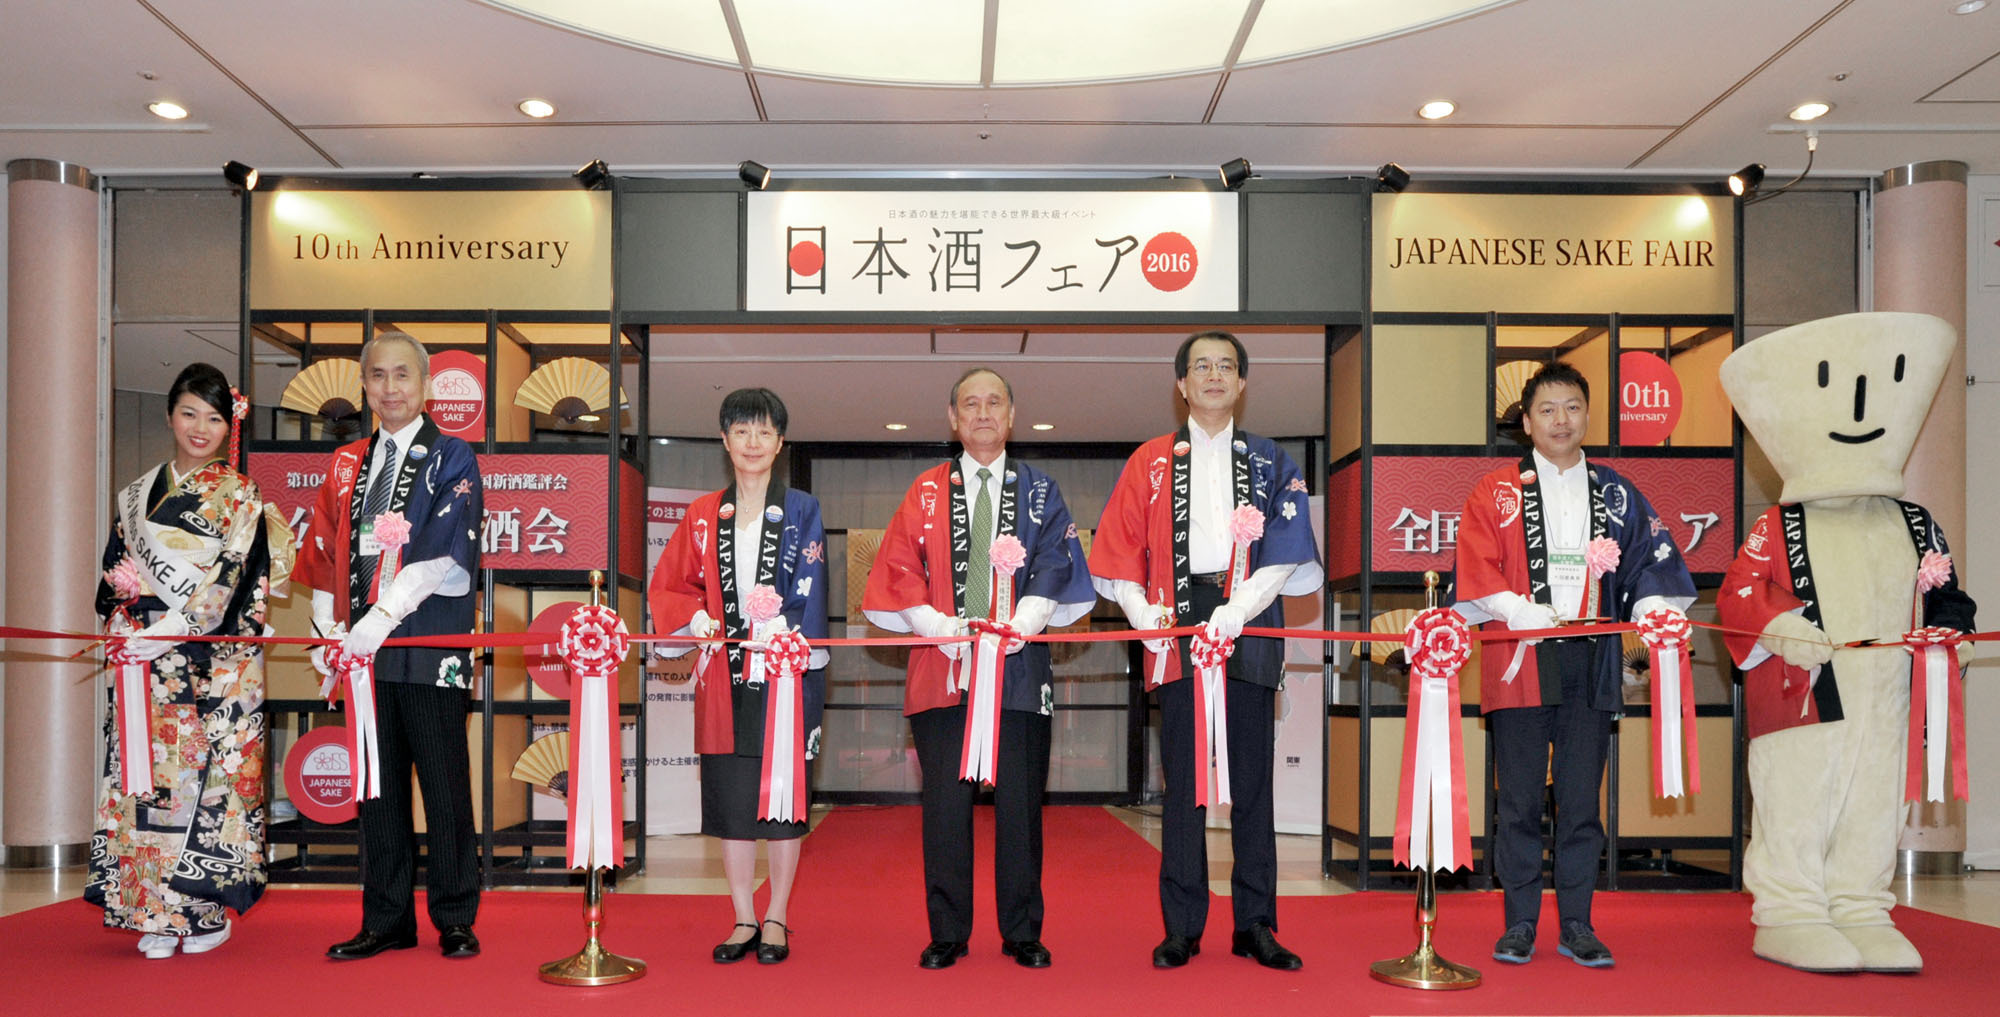 (From left) Miss Sake Japan Sayuri Tanaka; Tohoku Meijo Co. President Junji Sato; National Research Institute of Brewing President Nami Goto; Japan Sake and Shochu Makers Association Chairman Shigeyuki Shinohara; National Tax Agency Commissioner Hidenori Sakota; Tenzan Sake Brewery Chairman Kensuke Shichida; and mascot Ochoko-kun cut the ribbon to kick off the 10th Anniversary of the Japanese Sake Fair, the Japan Sake Brewers Association's annual public sake tasting event in the Sunshiine City complex in the Ikebukuro district of Tokyo on June 18. | YOSHIAKI MIURA